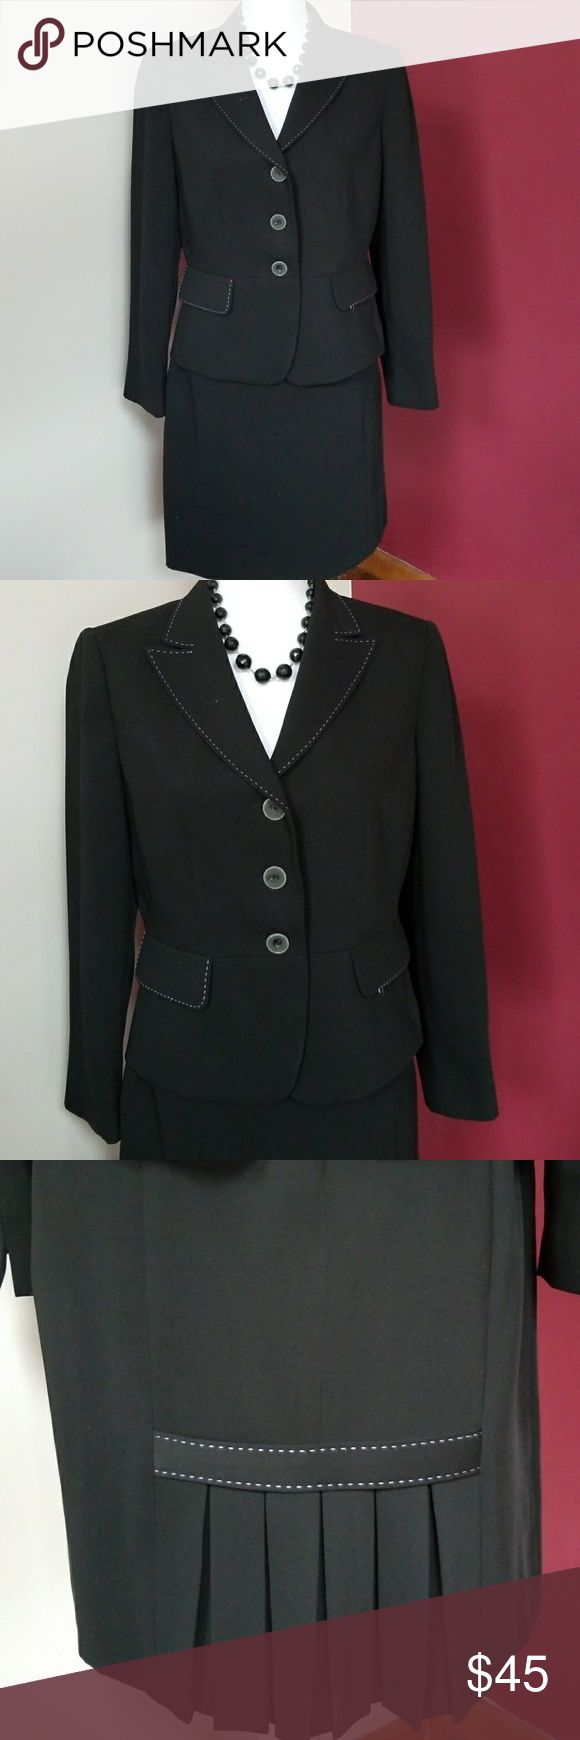 Tahari Two-Piece Suit 💜Two piece lined Tahari suit. Worn just a few times for interviews. There are a few stains om the liner, but no stains or marks on the outside fabric. Black with periwinkle stitching. Jacket has three buttons and faux front pockets. Skirt has flirty pleated back! Very beautiful suit! Size 10  Petite, Poly/Acetate 💜 Tahari Skirts Skirt Sets